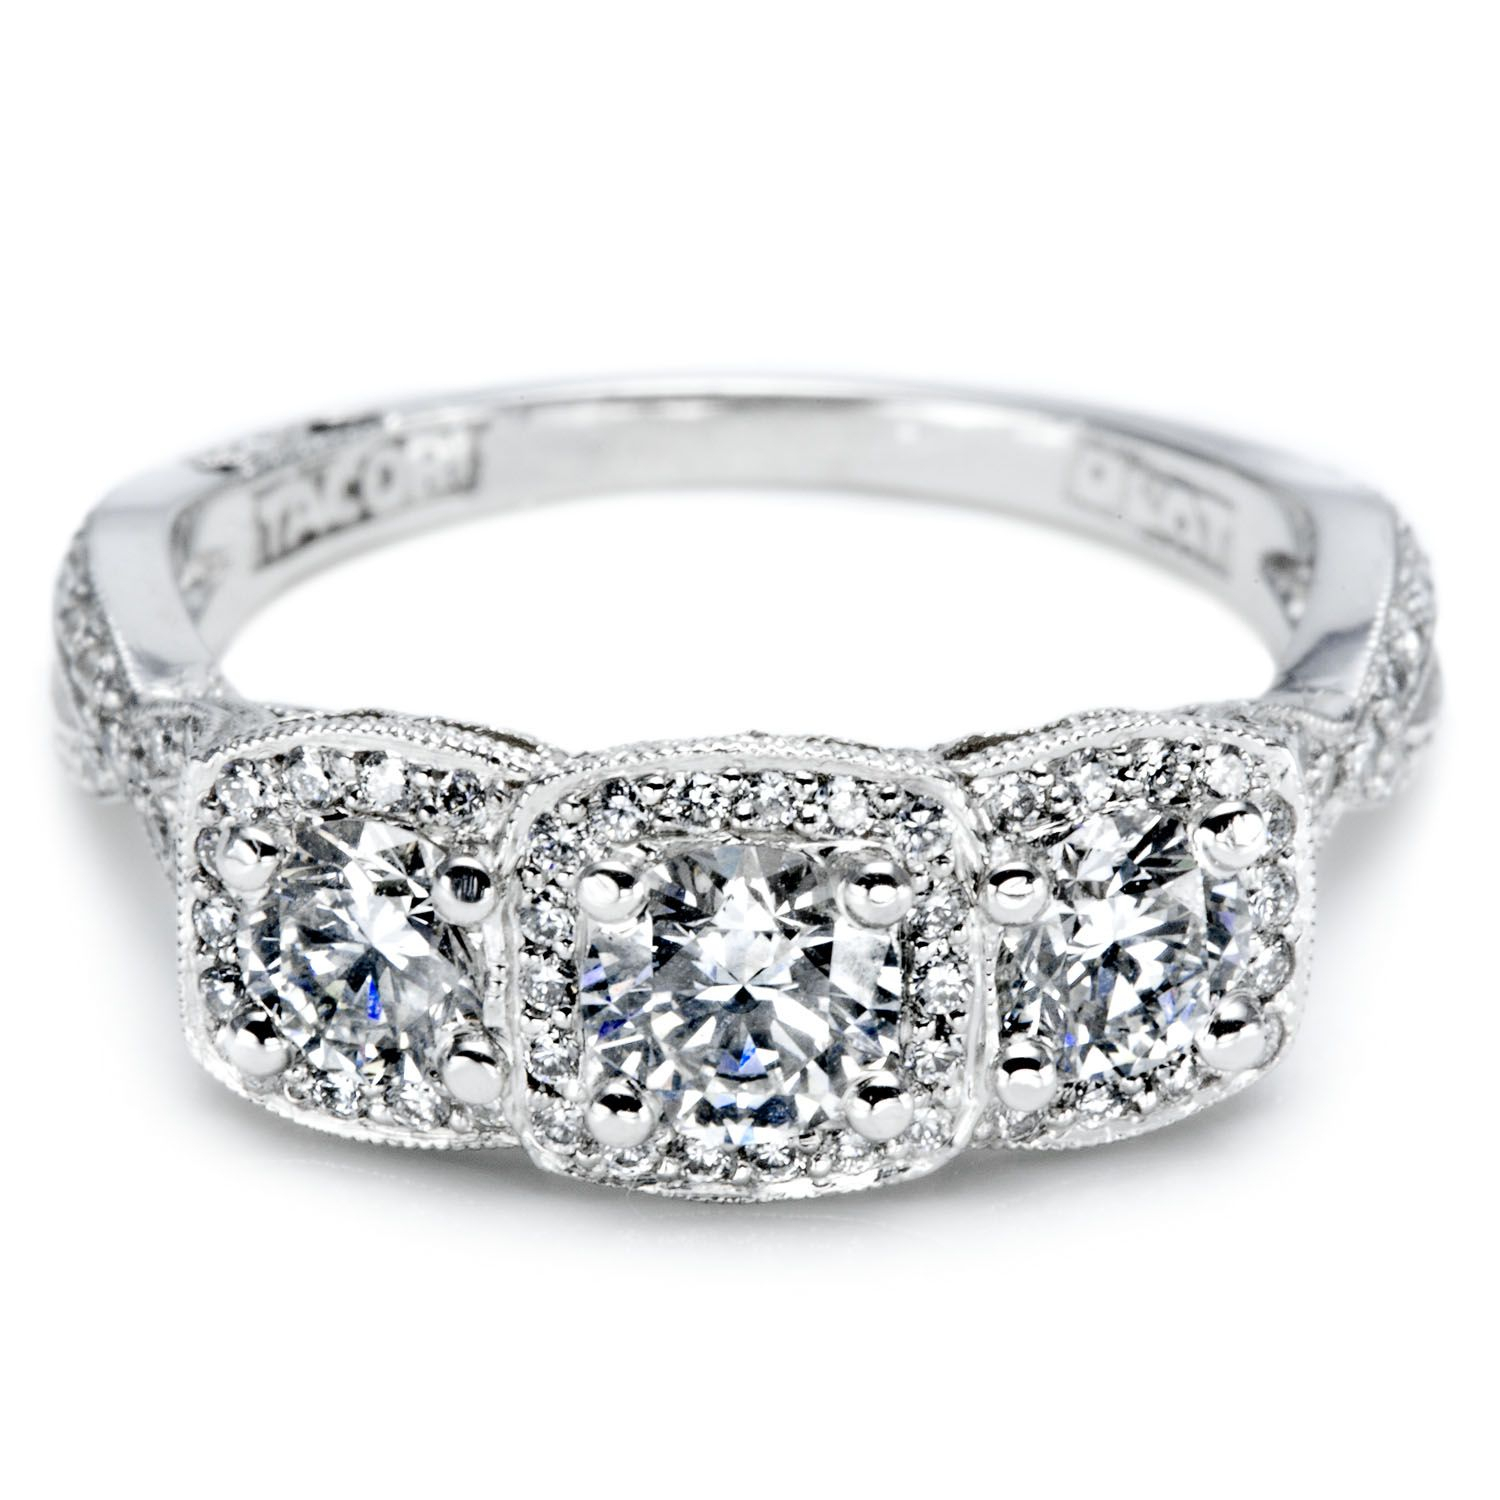 Unique Diamond Anniversary Rings | View Some Examples Of For Most Recently Released Enhanced Black And White Diamond Vintage Style Anniversary Bands In Sterling Silver (View 6 of 25)